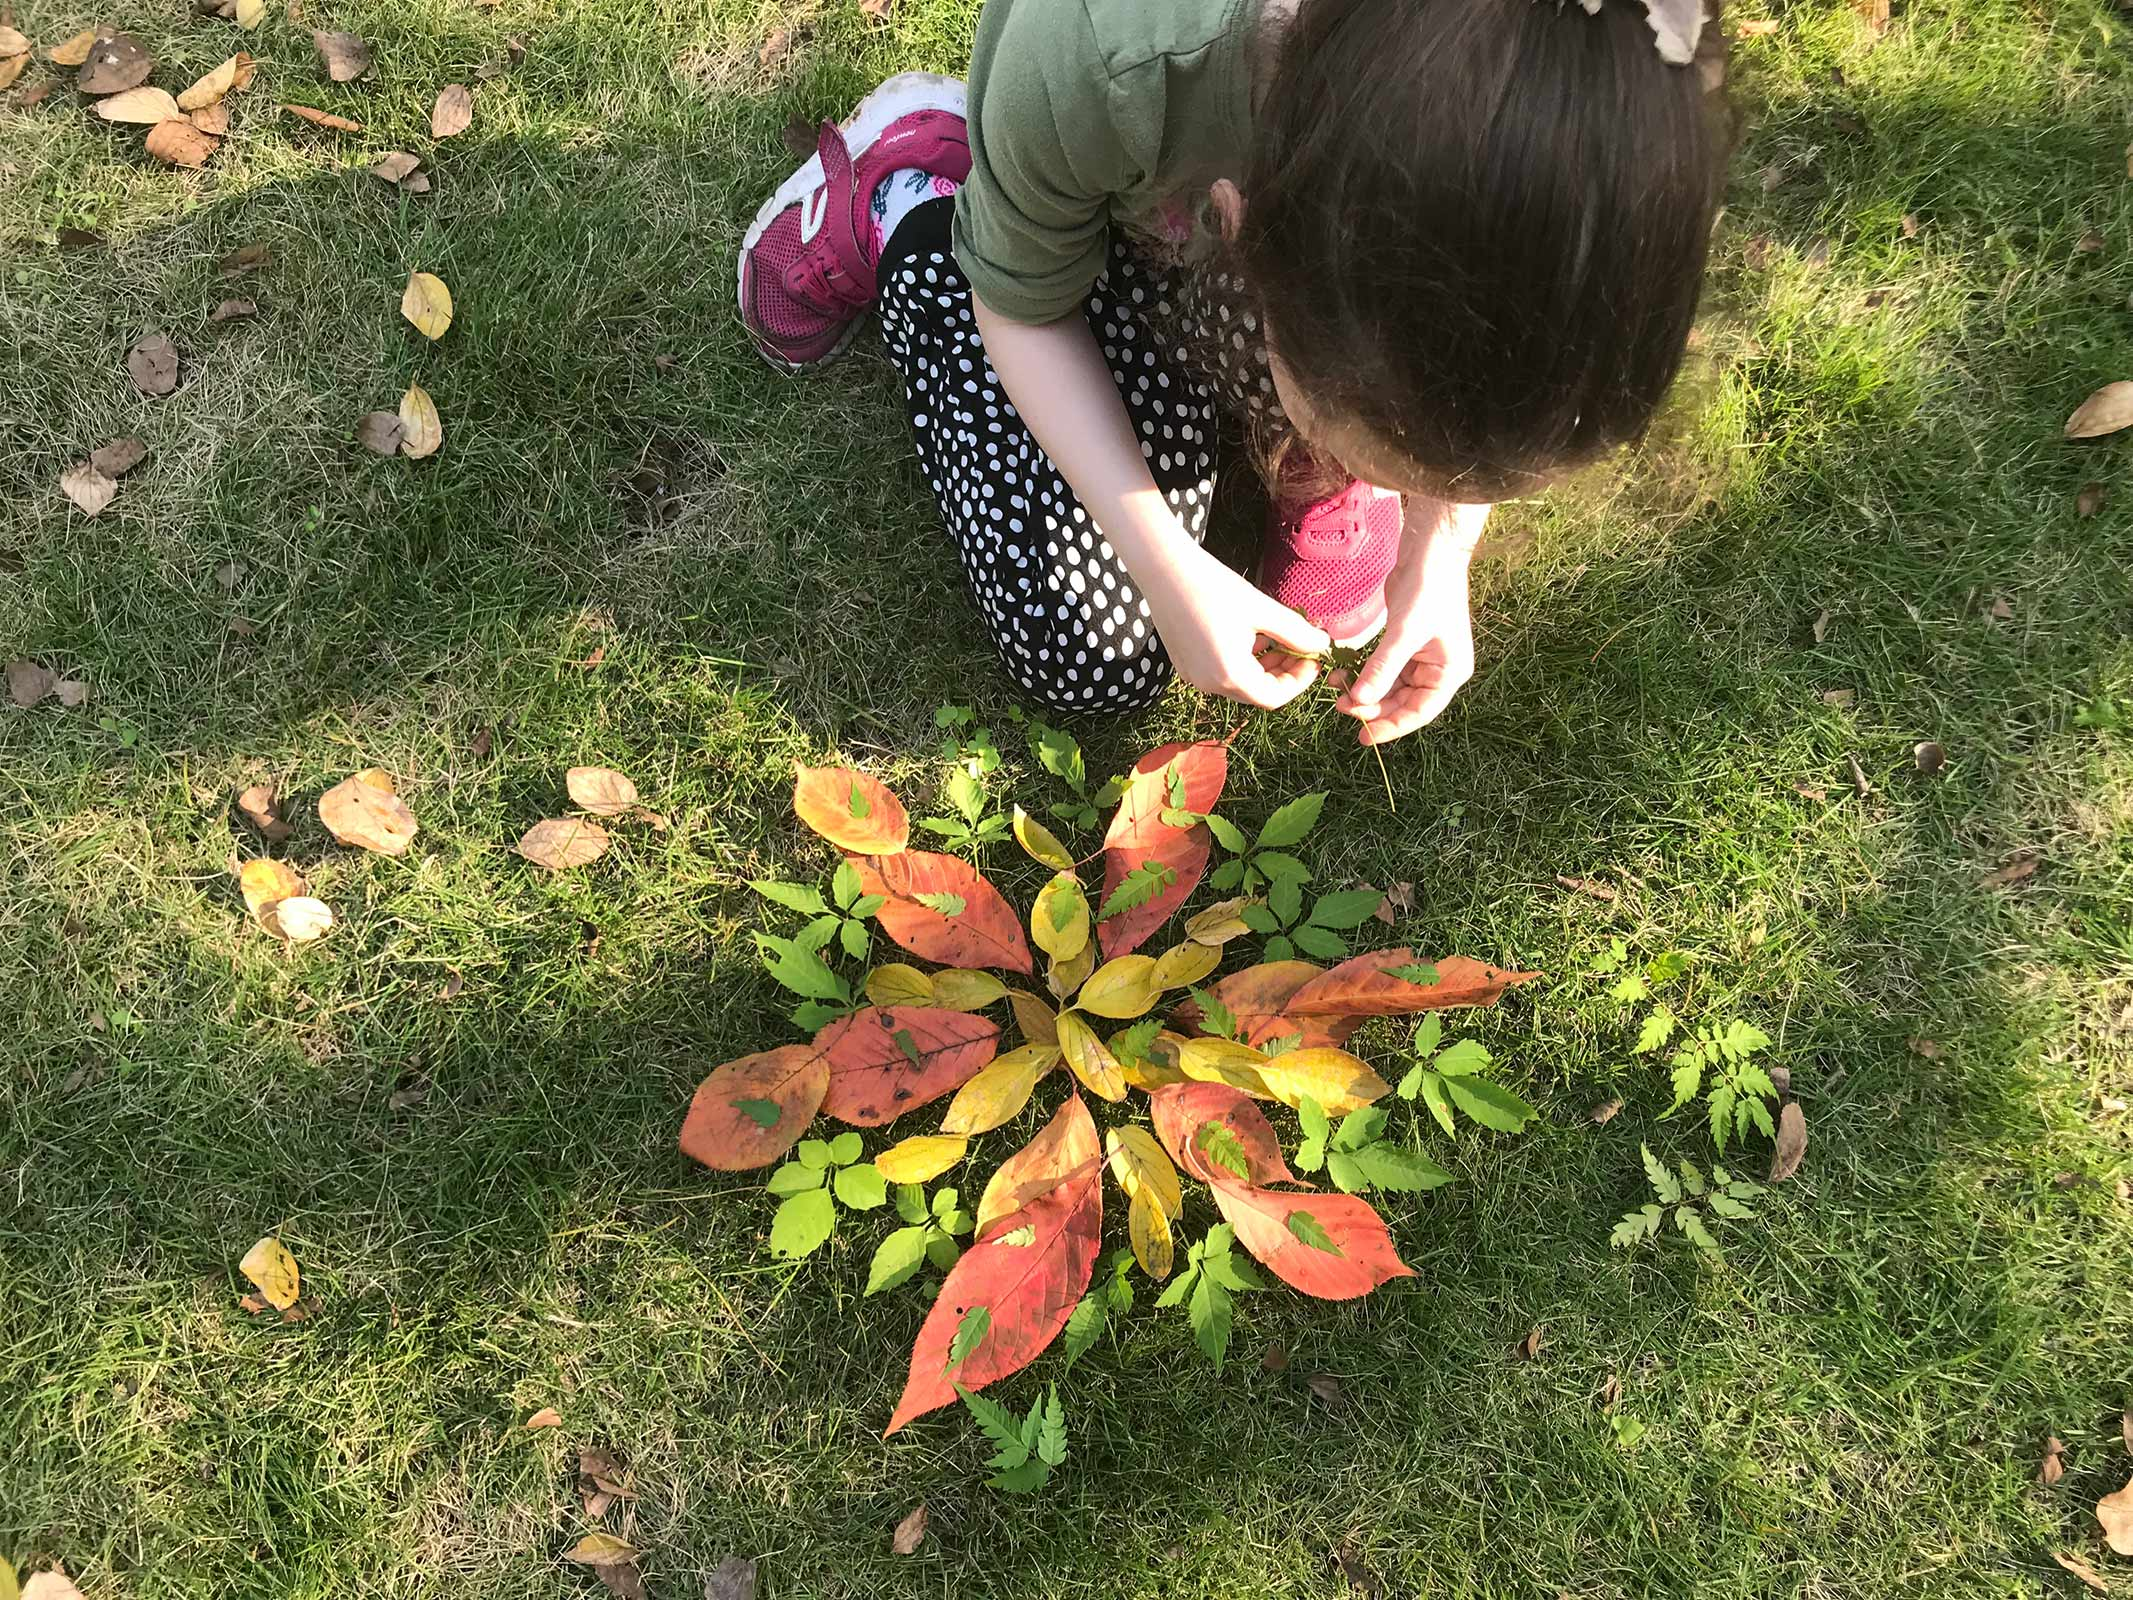 girl collecting leafs in nature